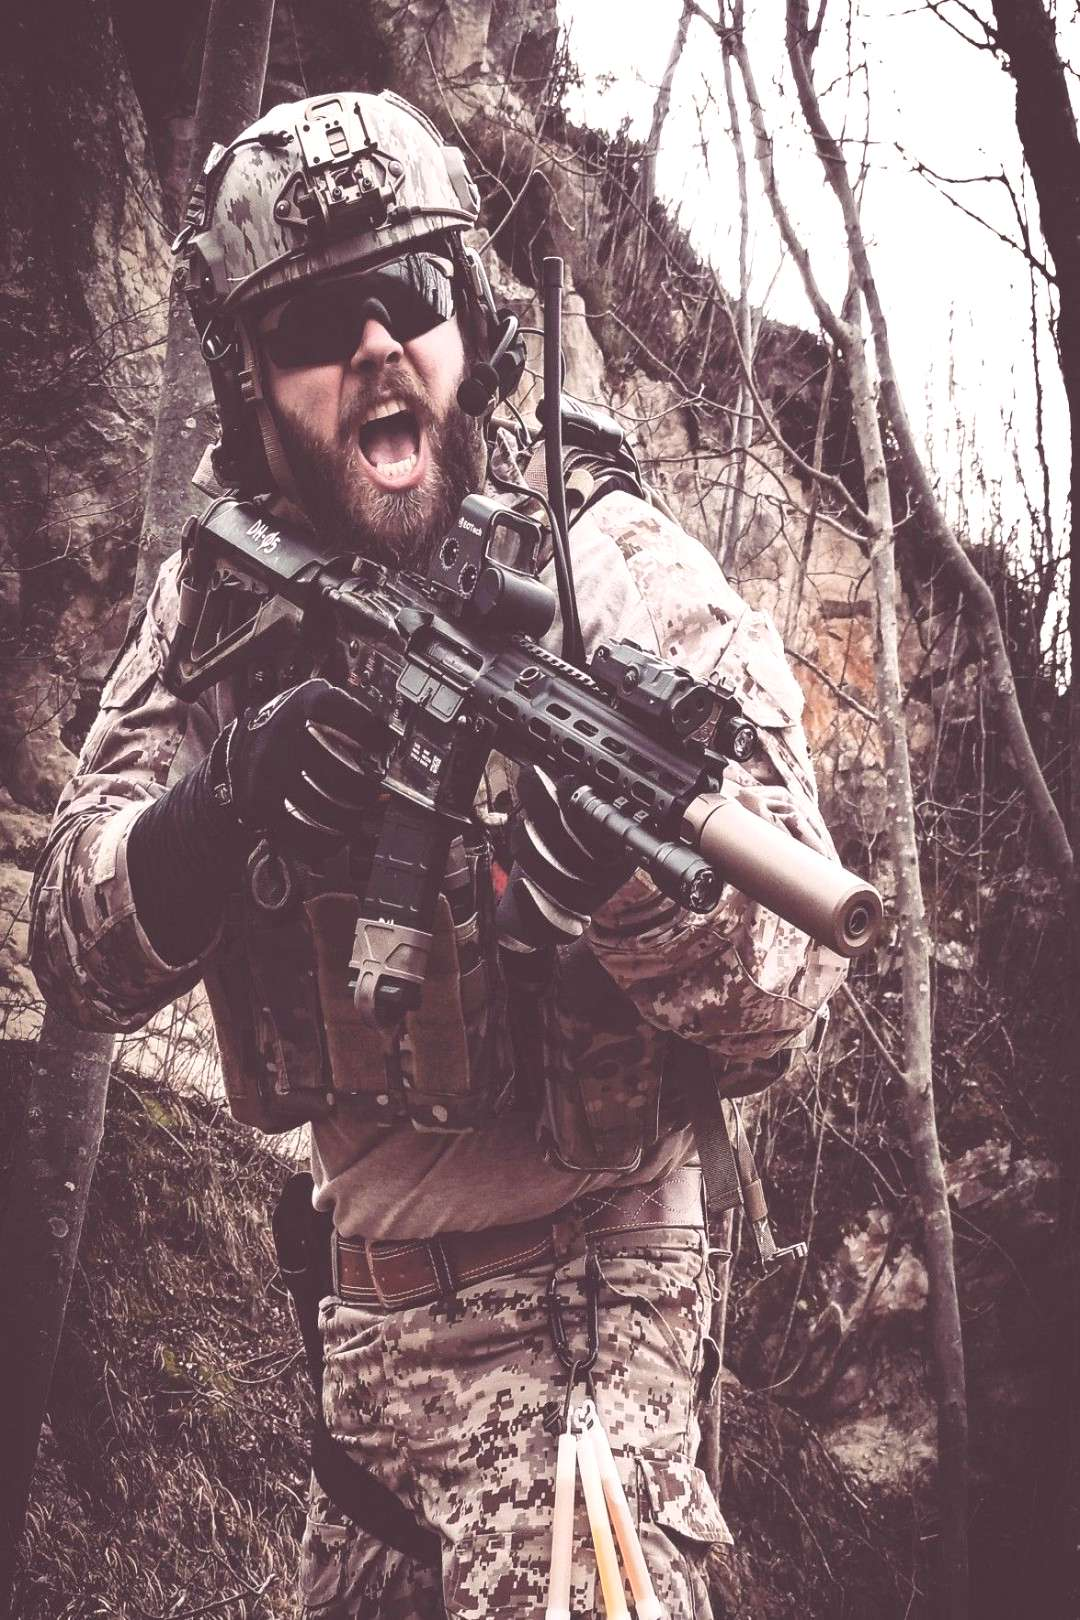 Devgru impresssion This kit inspired to @sealteamcbs seems to be really appreciated so here It Is